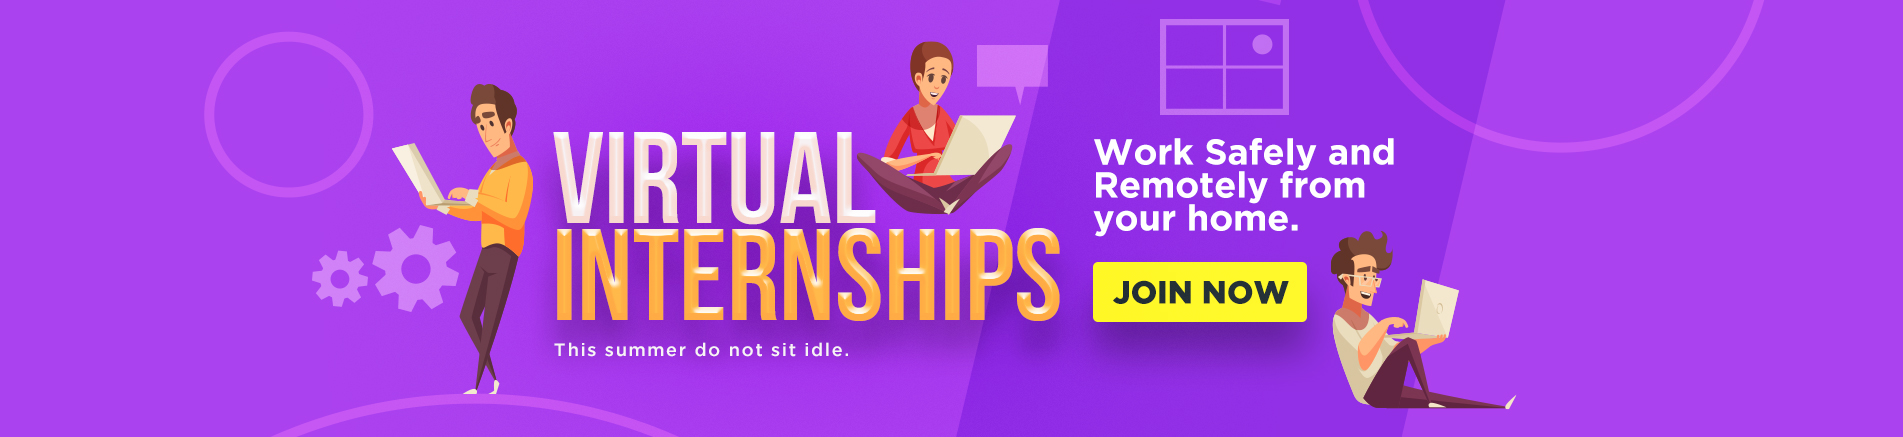 Virtual Internships - Work safely and remotely